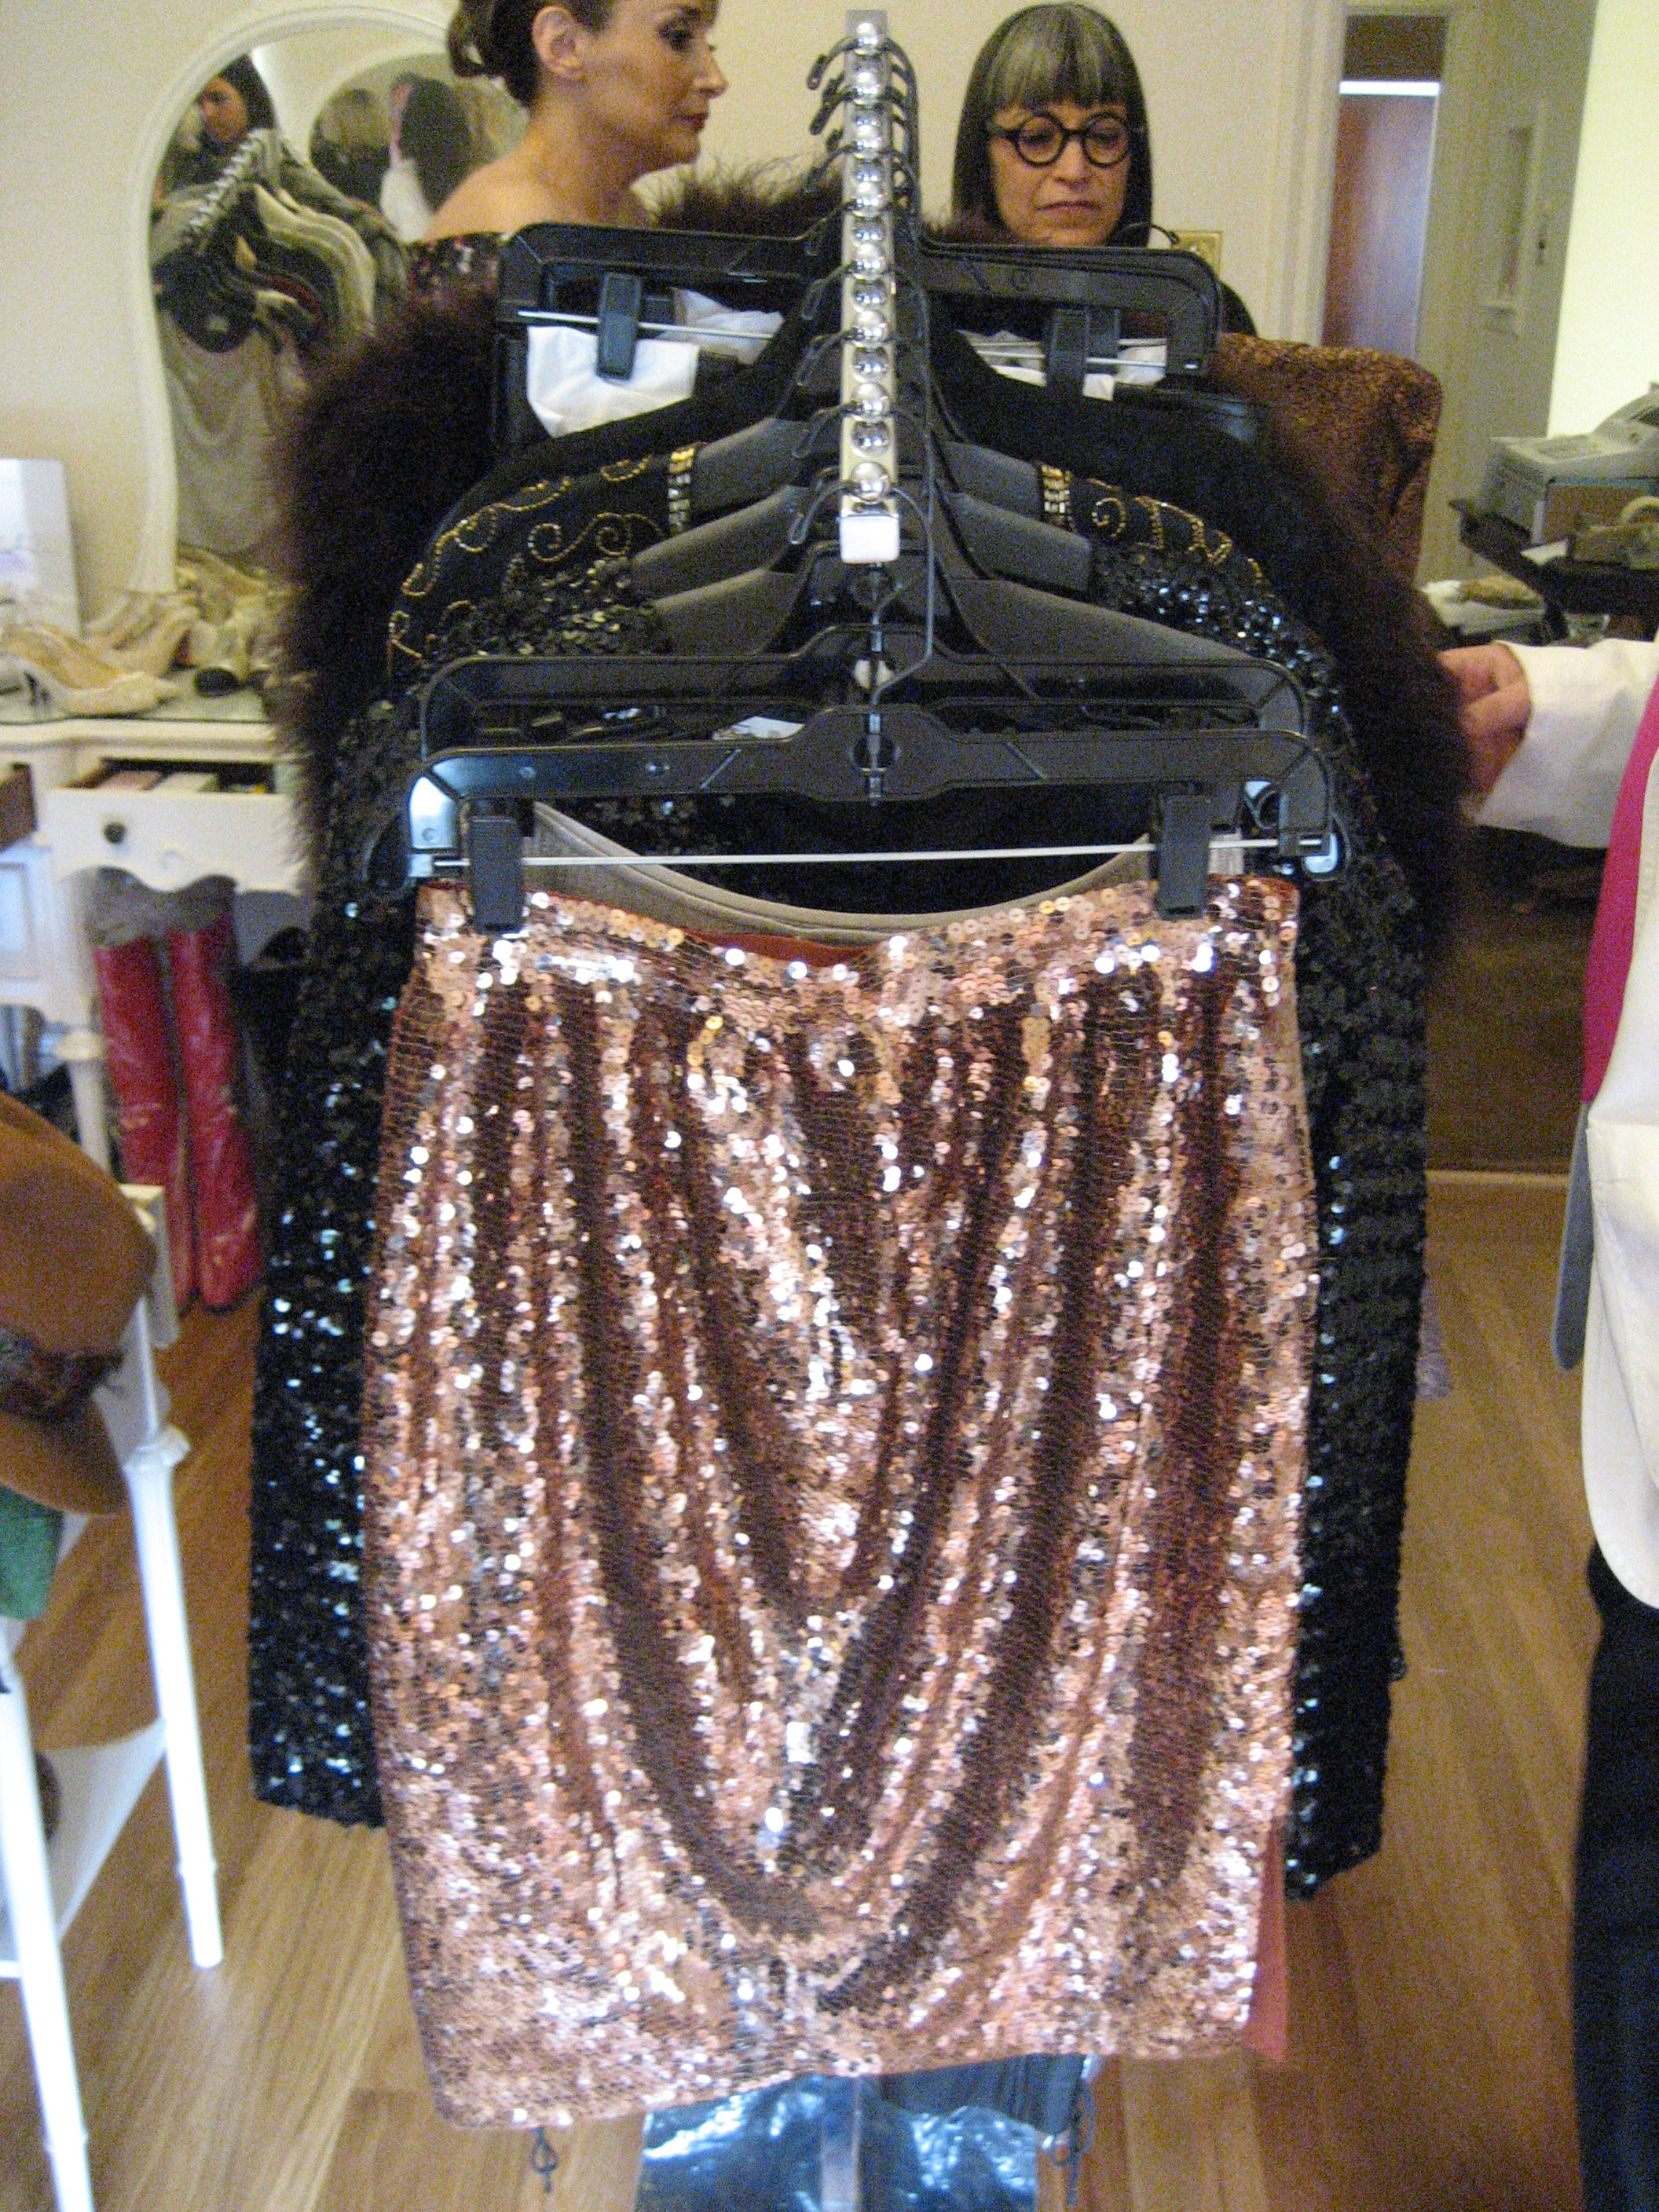 A divine sequin skirt.